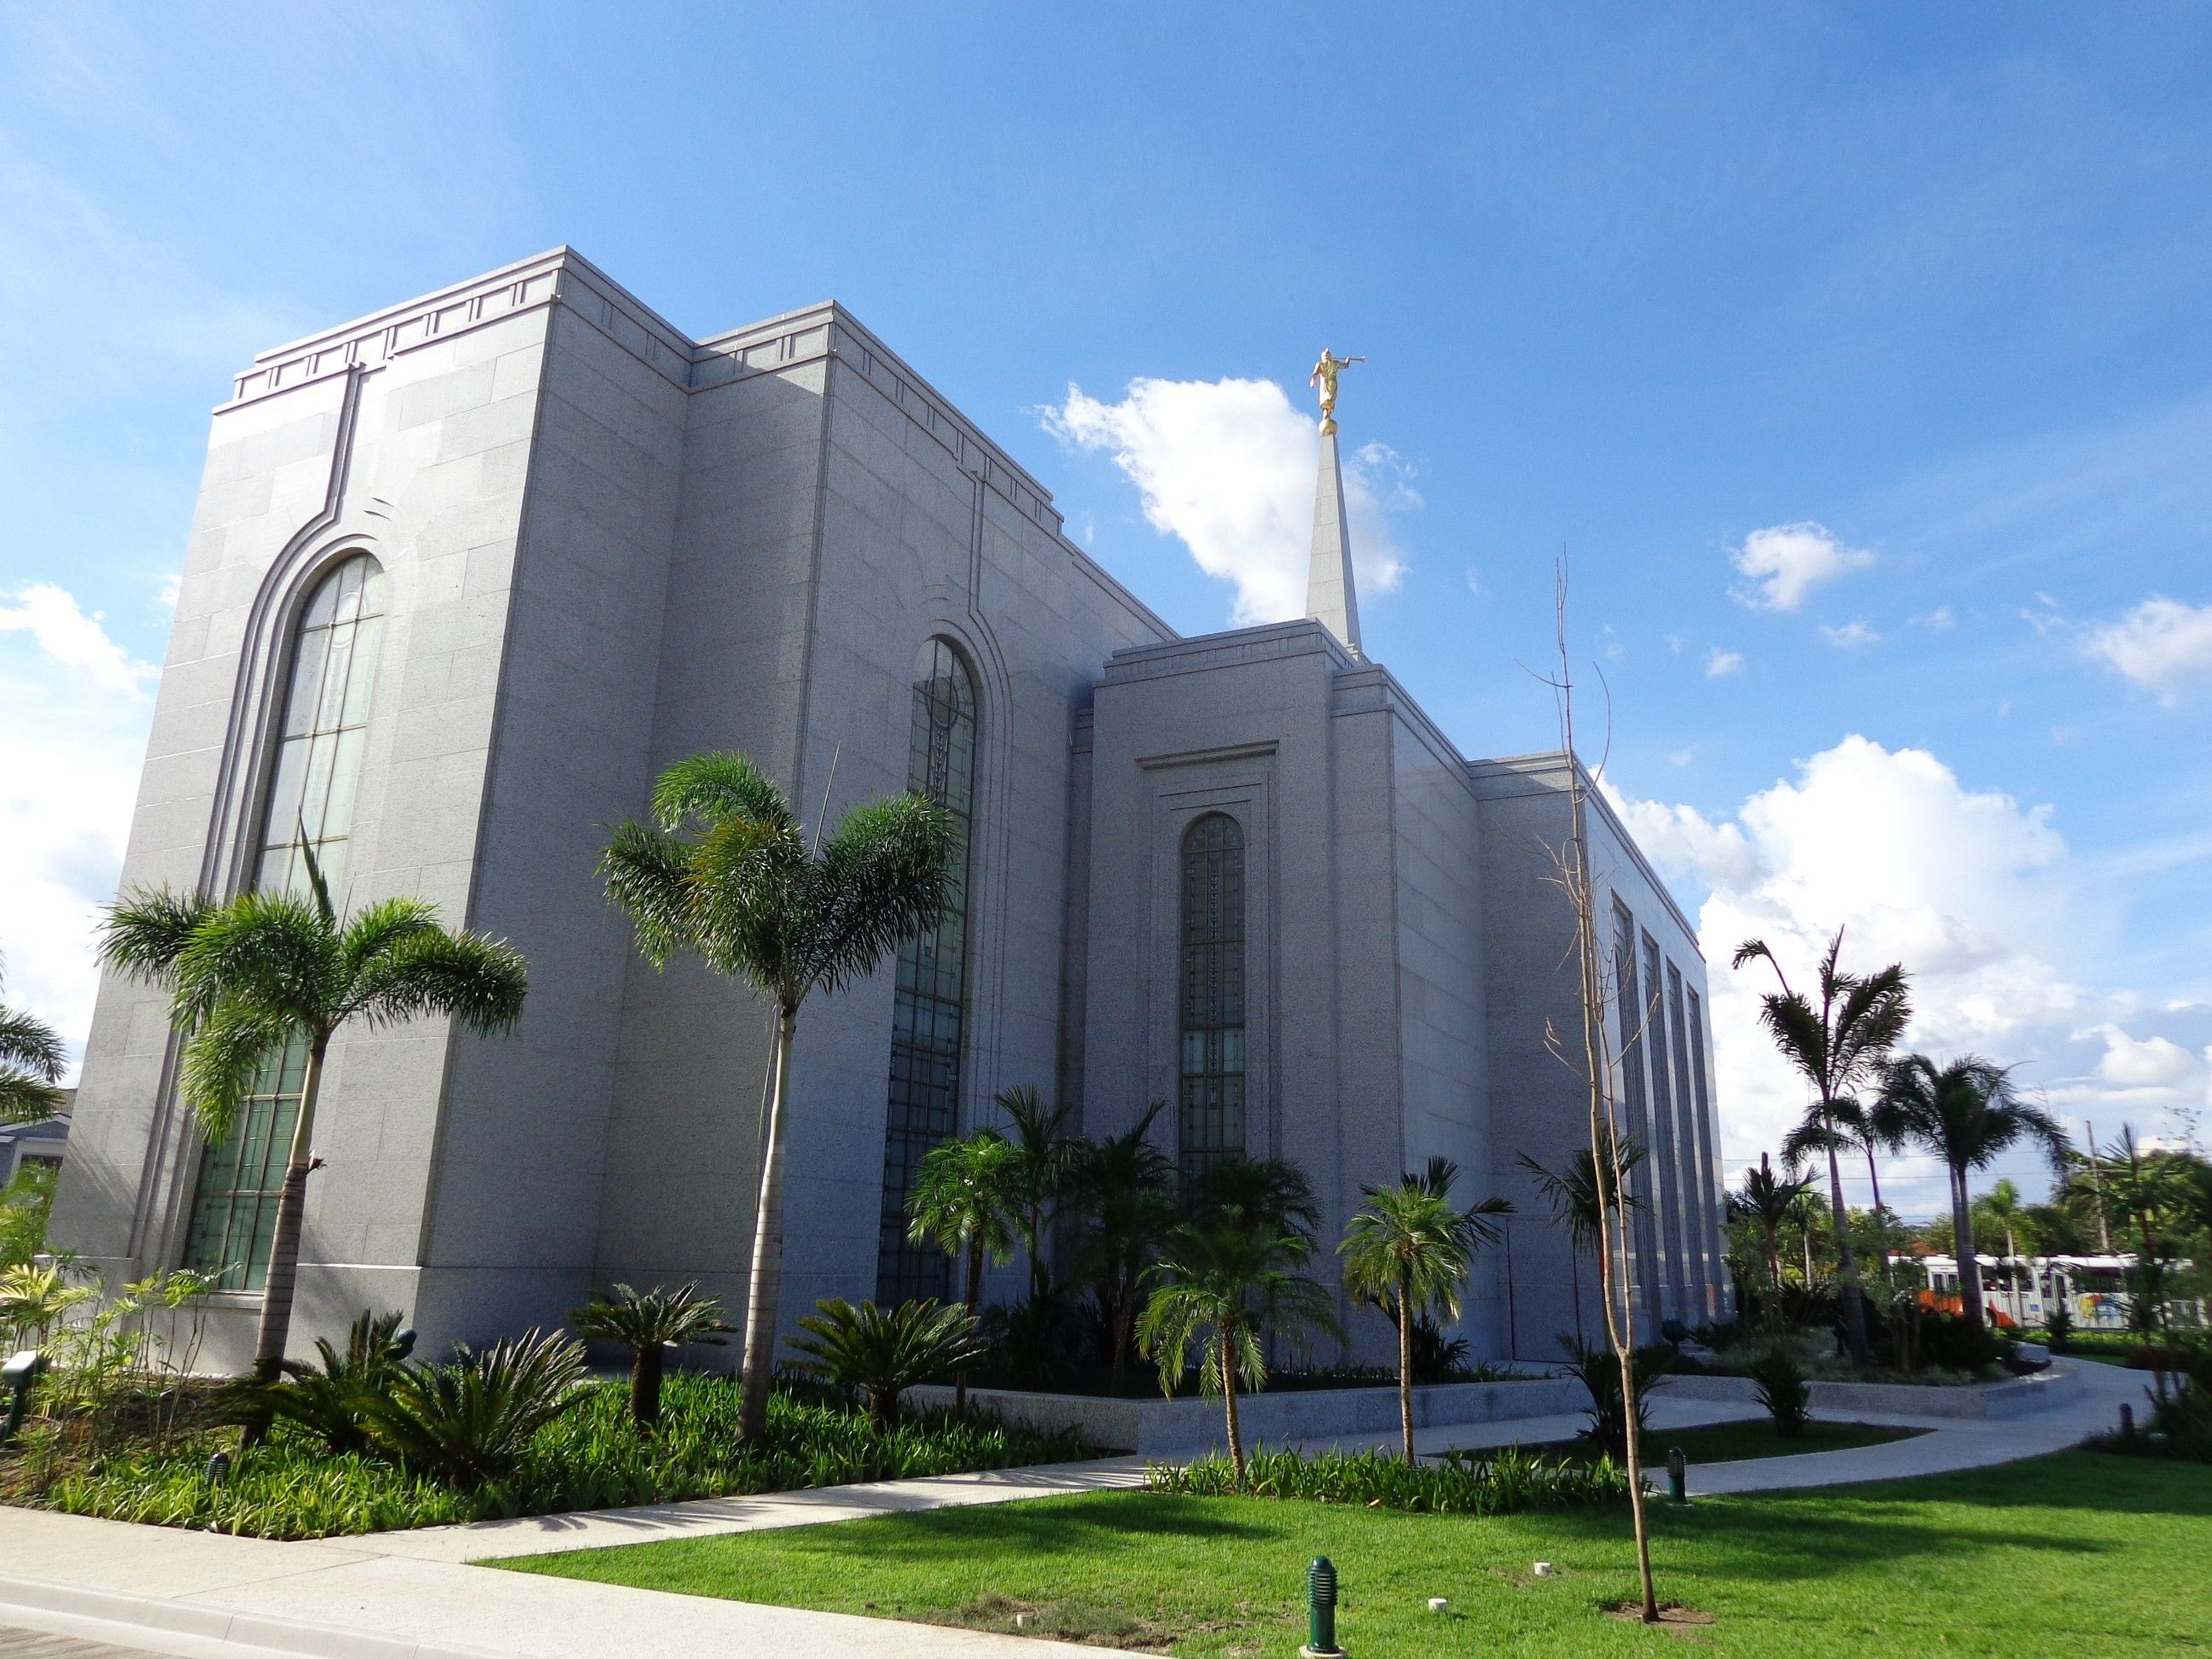 The Manaus Brazil Temple back view, including scenery.